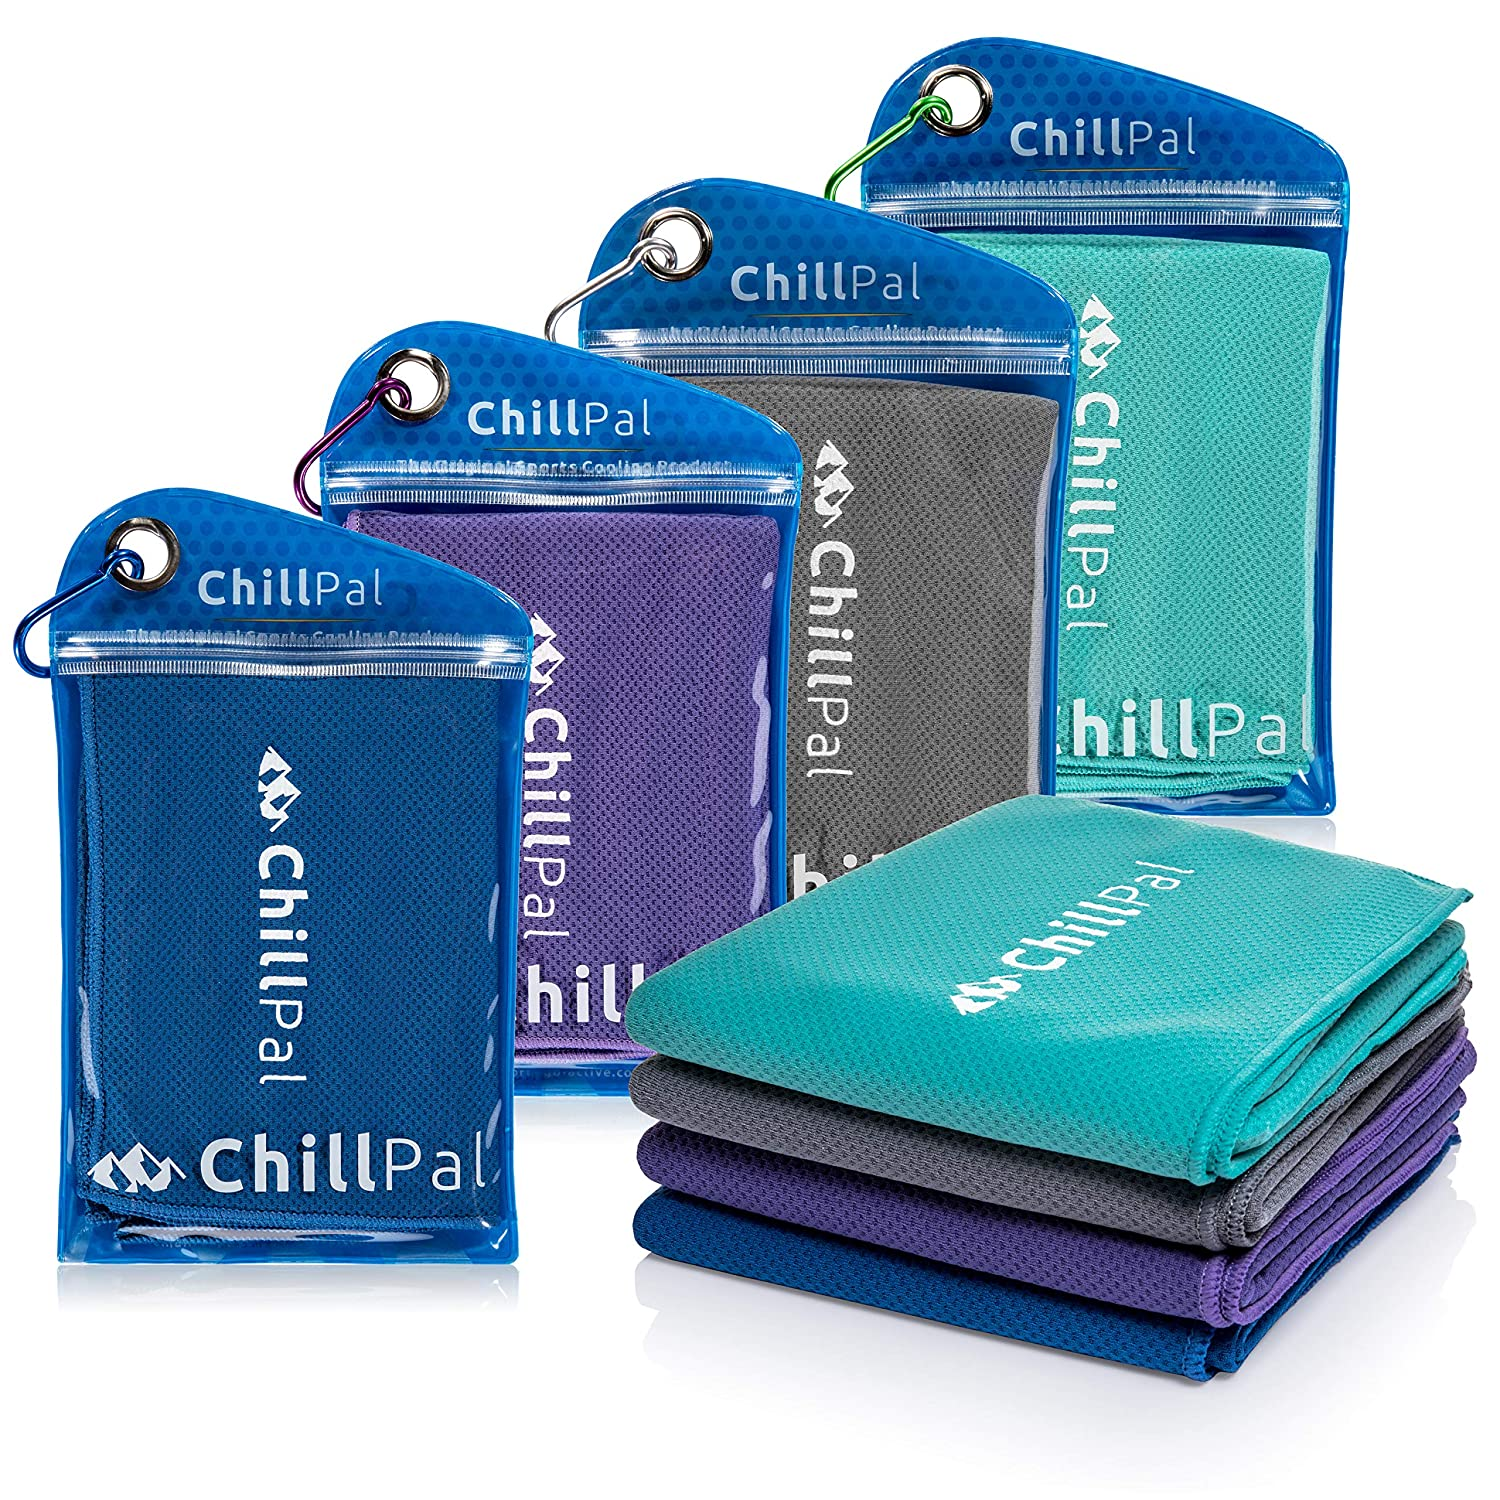 Chill Pal Mesh Cooling Towel for Sports, Gym, Yoga & More - 4 Colors to Choose